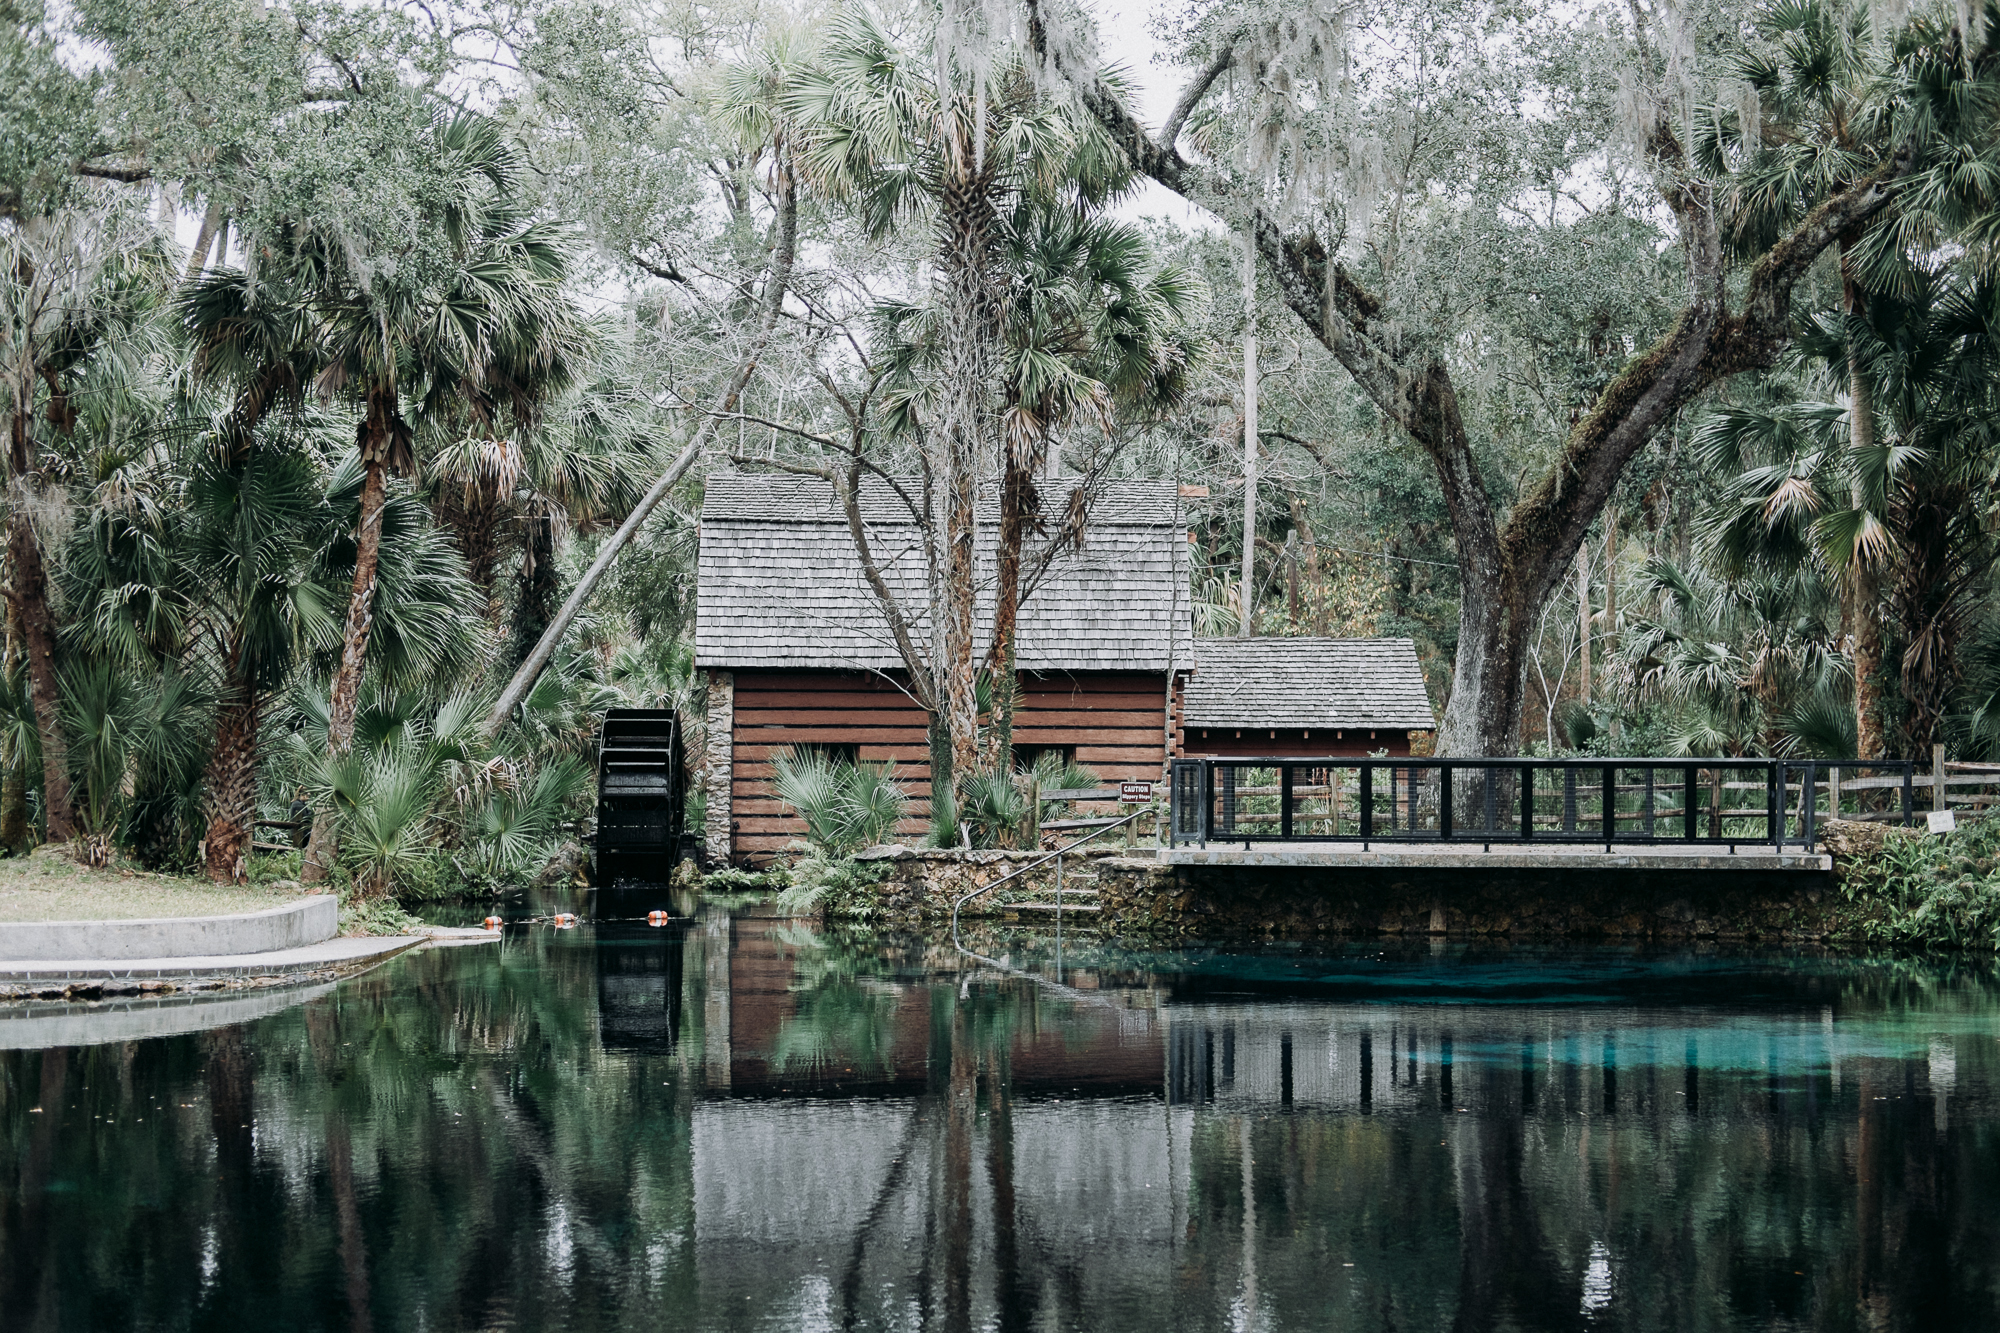 From-Coast-to-Coast-Camping-Juniper-Springs-ocala-national-forest-22-2631.jpg